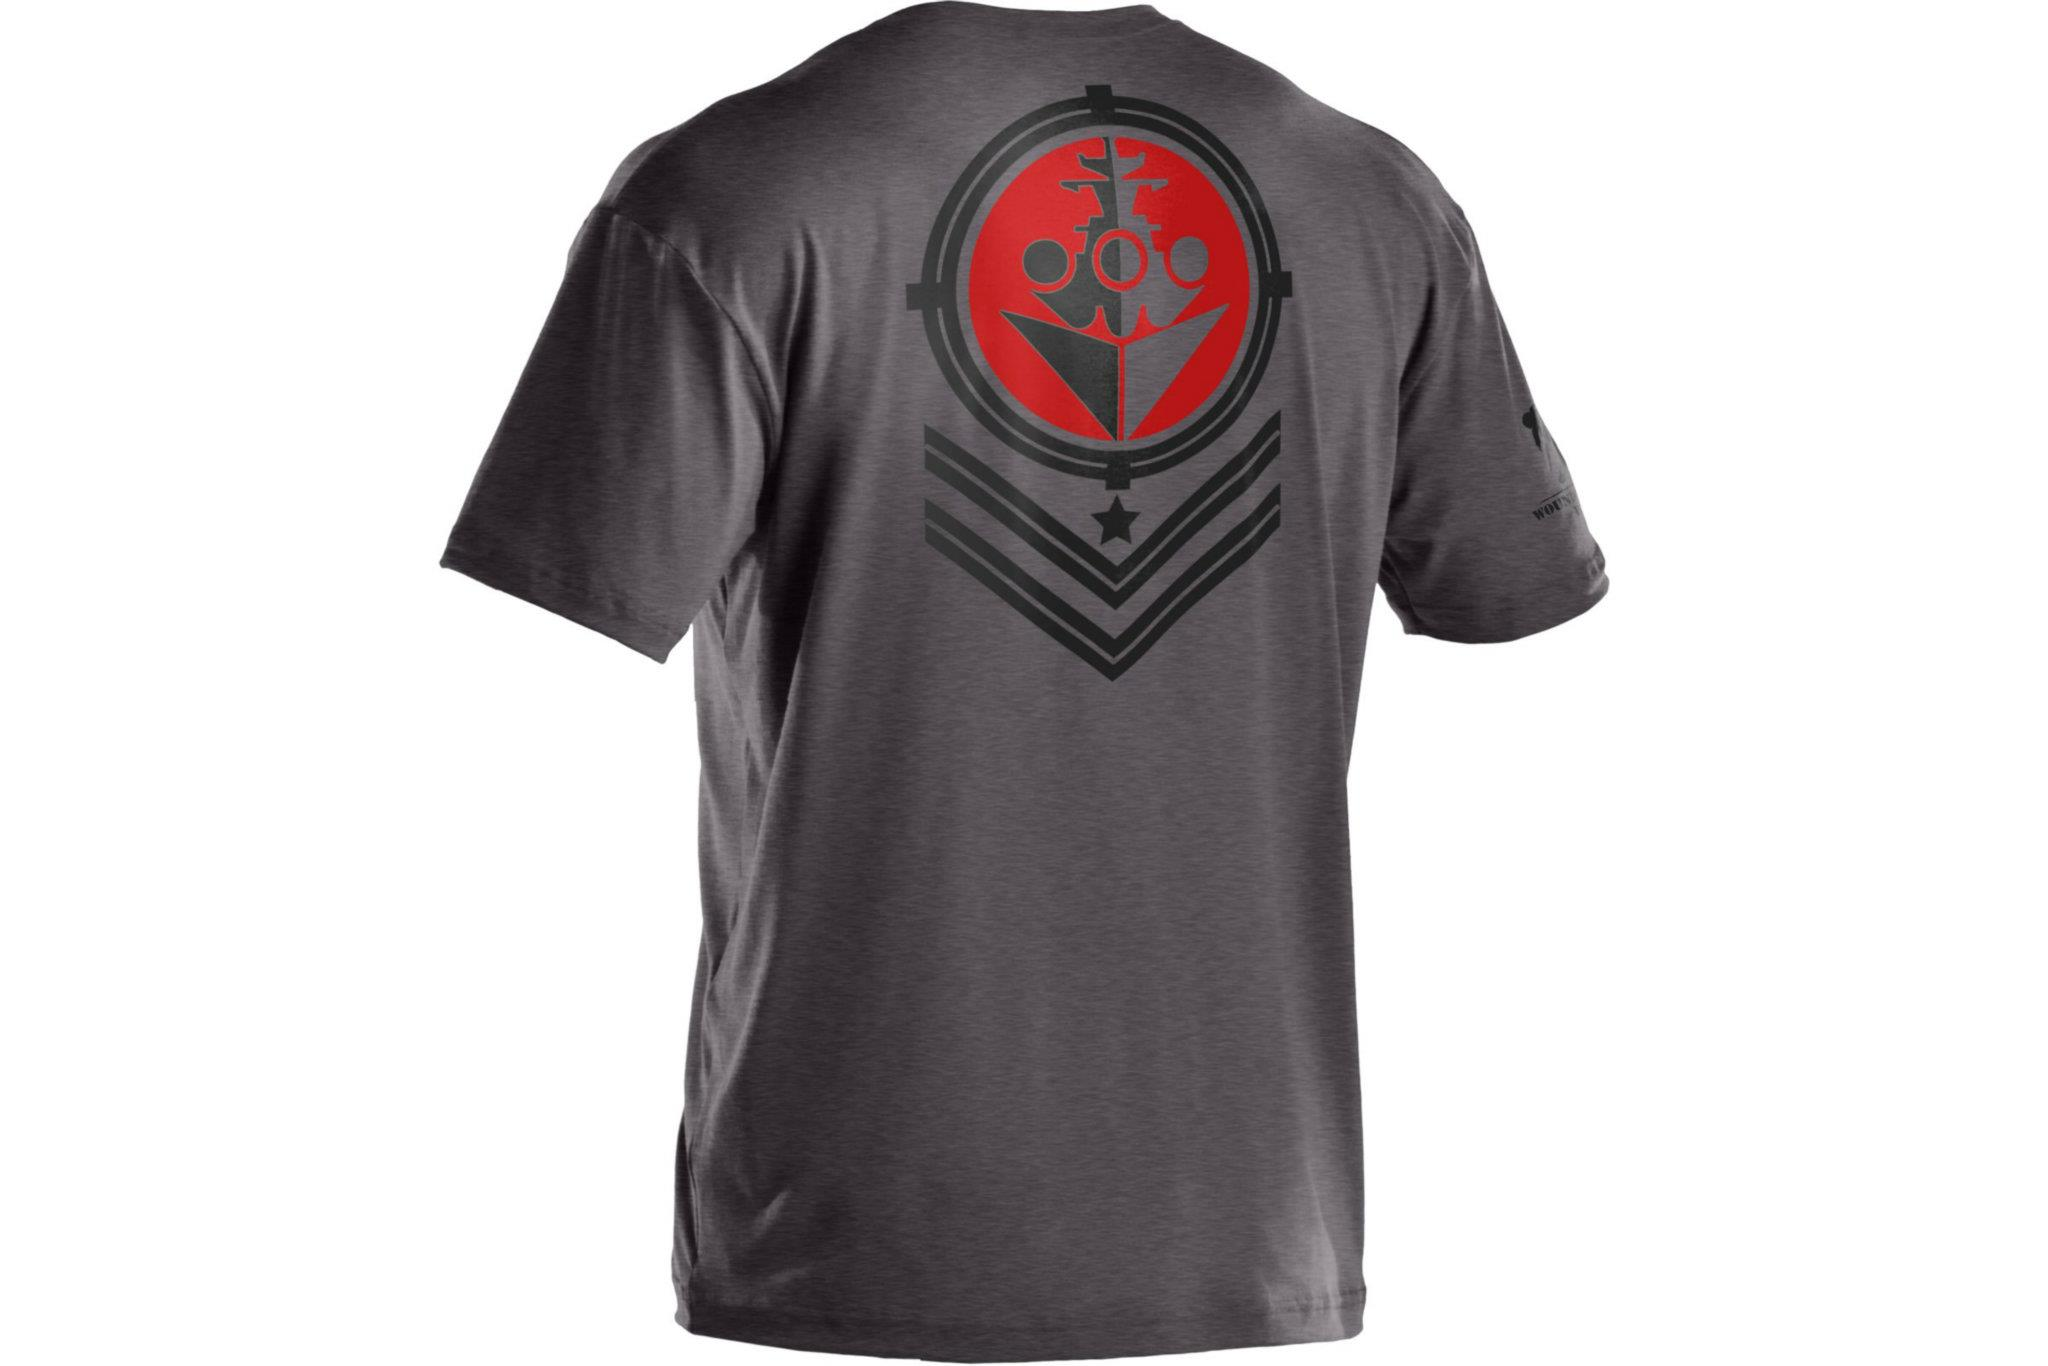 Under armour wounded warrior project battleship t shirts for Under armour i will shirt